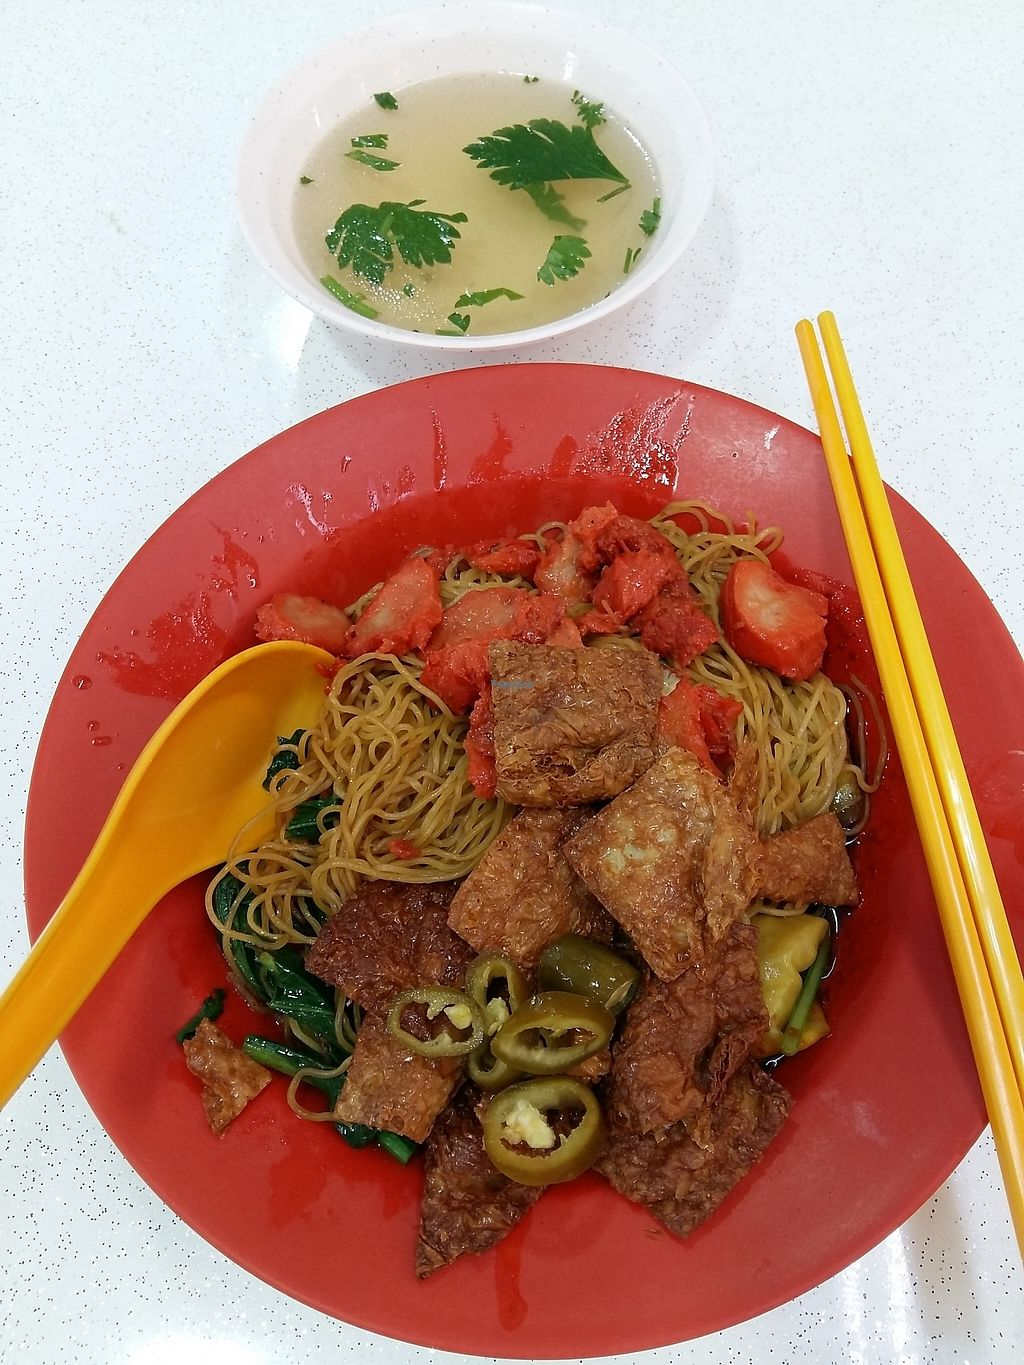 """Photo of Jia Le Yuan Vegetarian  by <a href=""""/members/profile/RichardLee"""">RichardLee</a> <br/>Wanton Noodle <br/> January 20, 2017  - <a href='/contact/abuse/image/85431/213449'>Report</a>"""